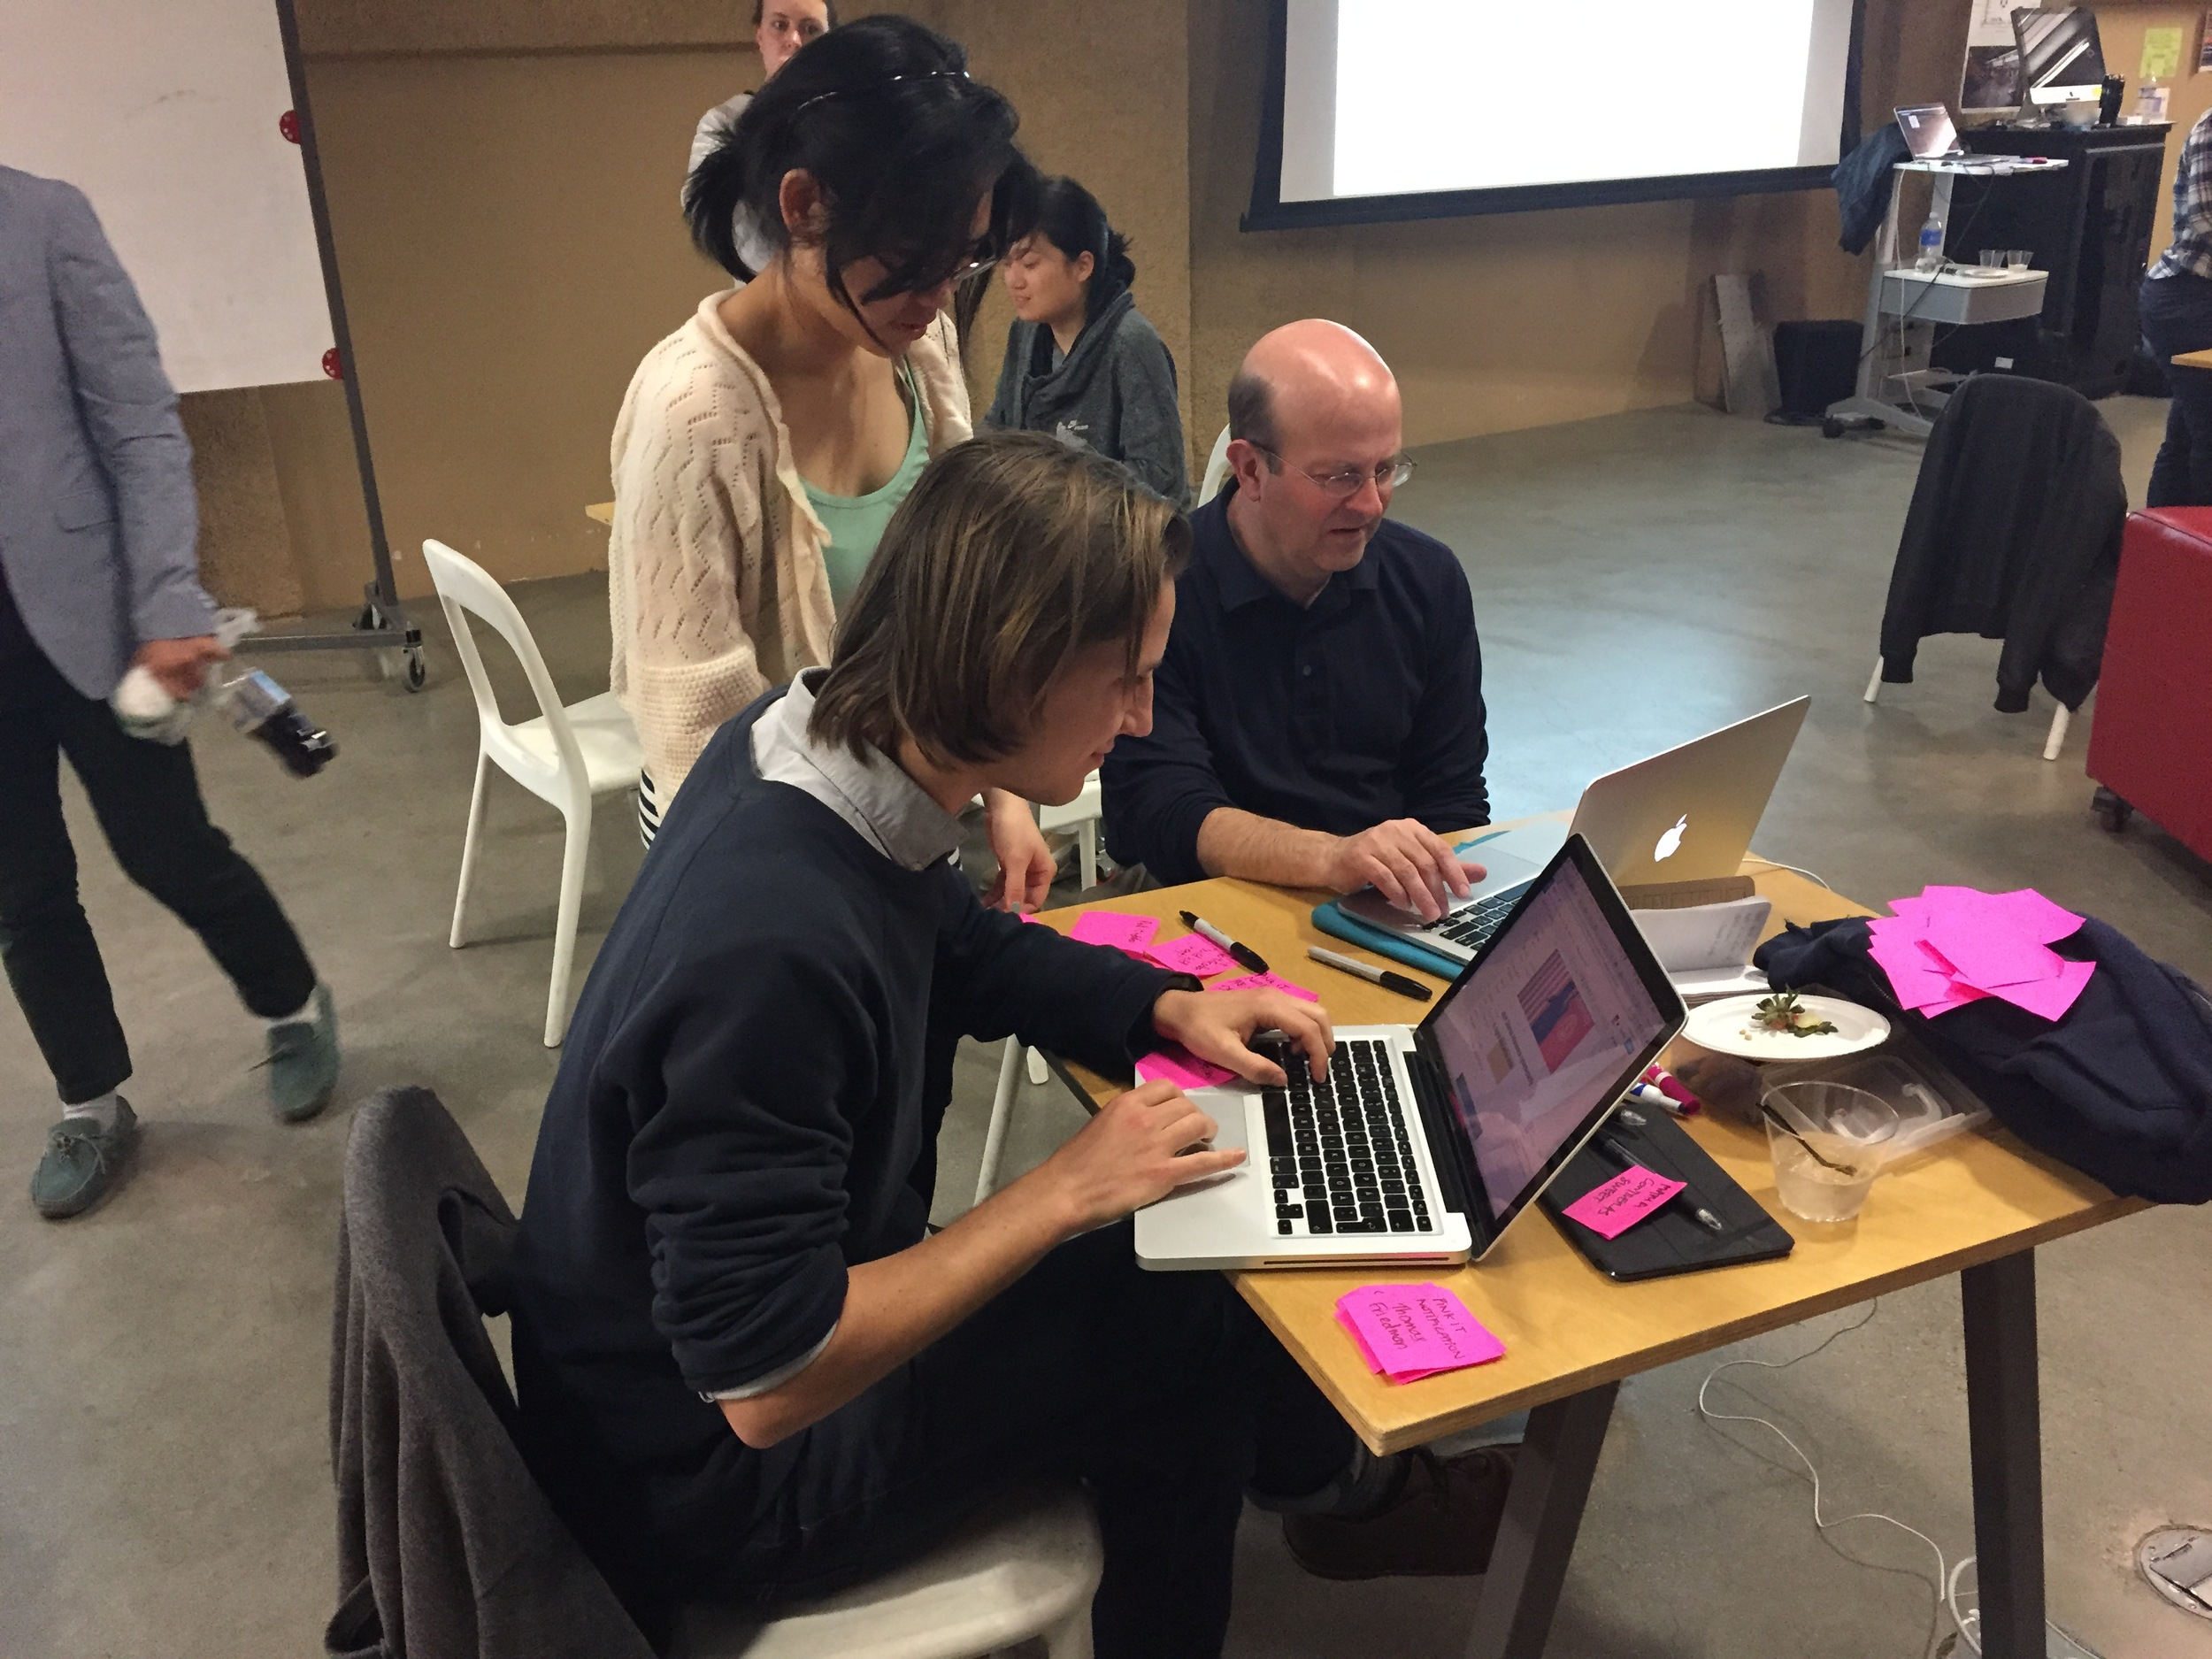 """Students work with Jay Hamilton, the Director of Stanford's Journalism Program, (right) testing """"Pink It"""", one of the prototypes created during class. (Emi Kolawole)"""